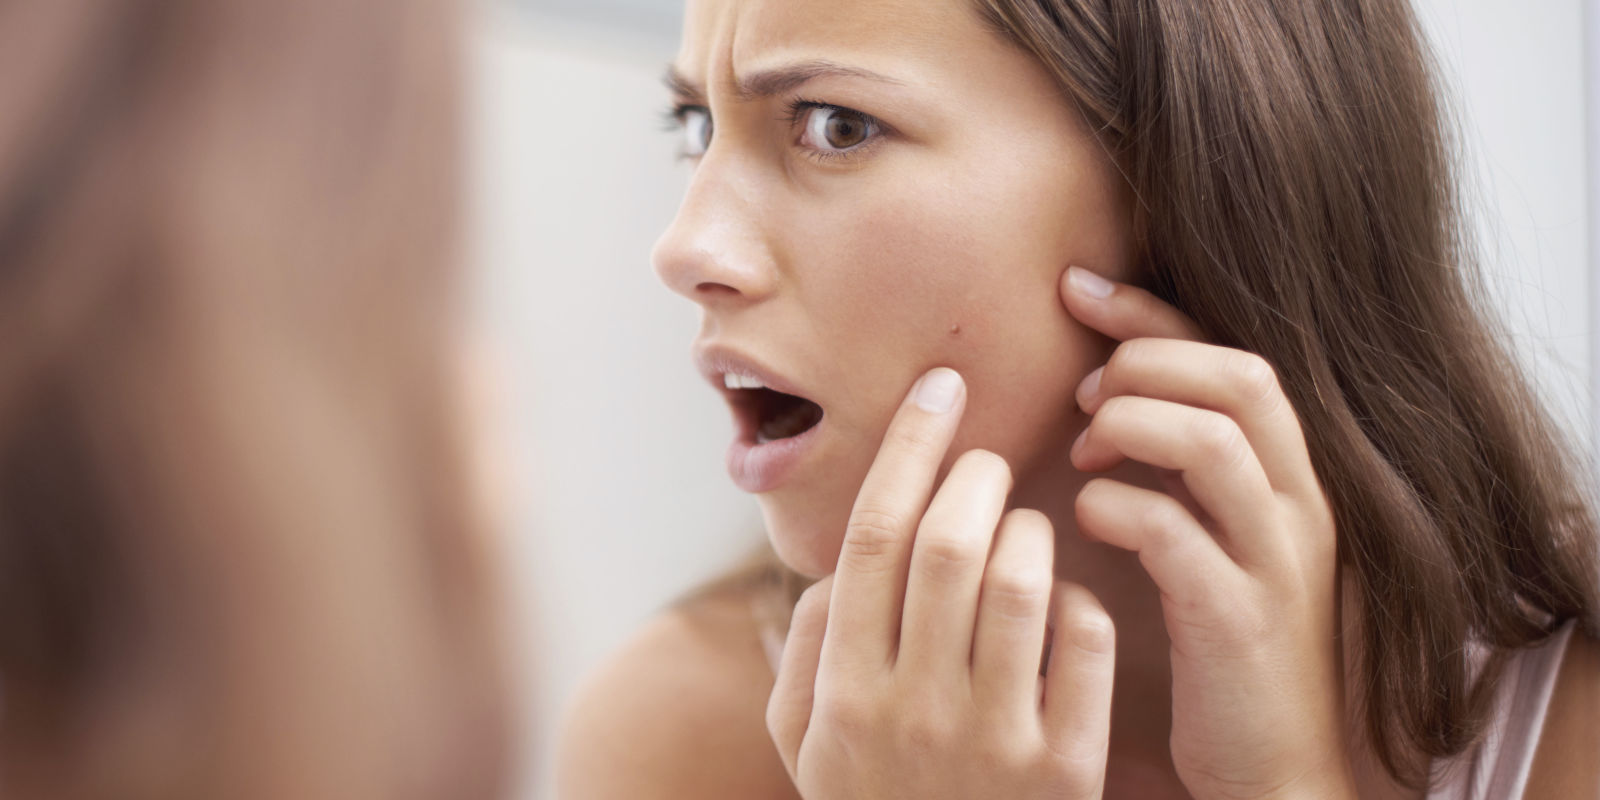 Is your protein shake causing acne breakouts?